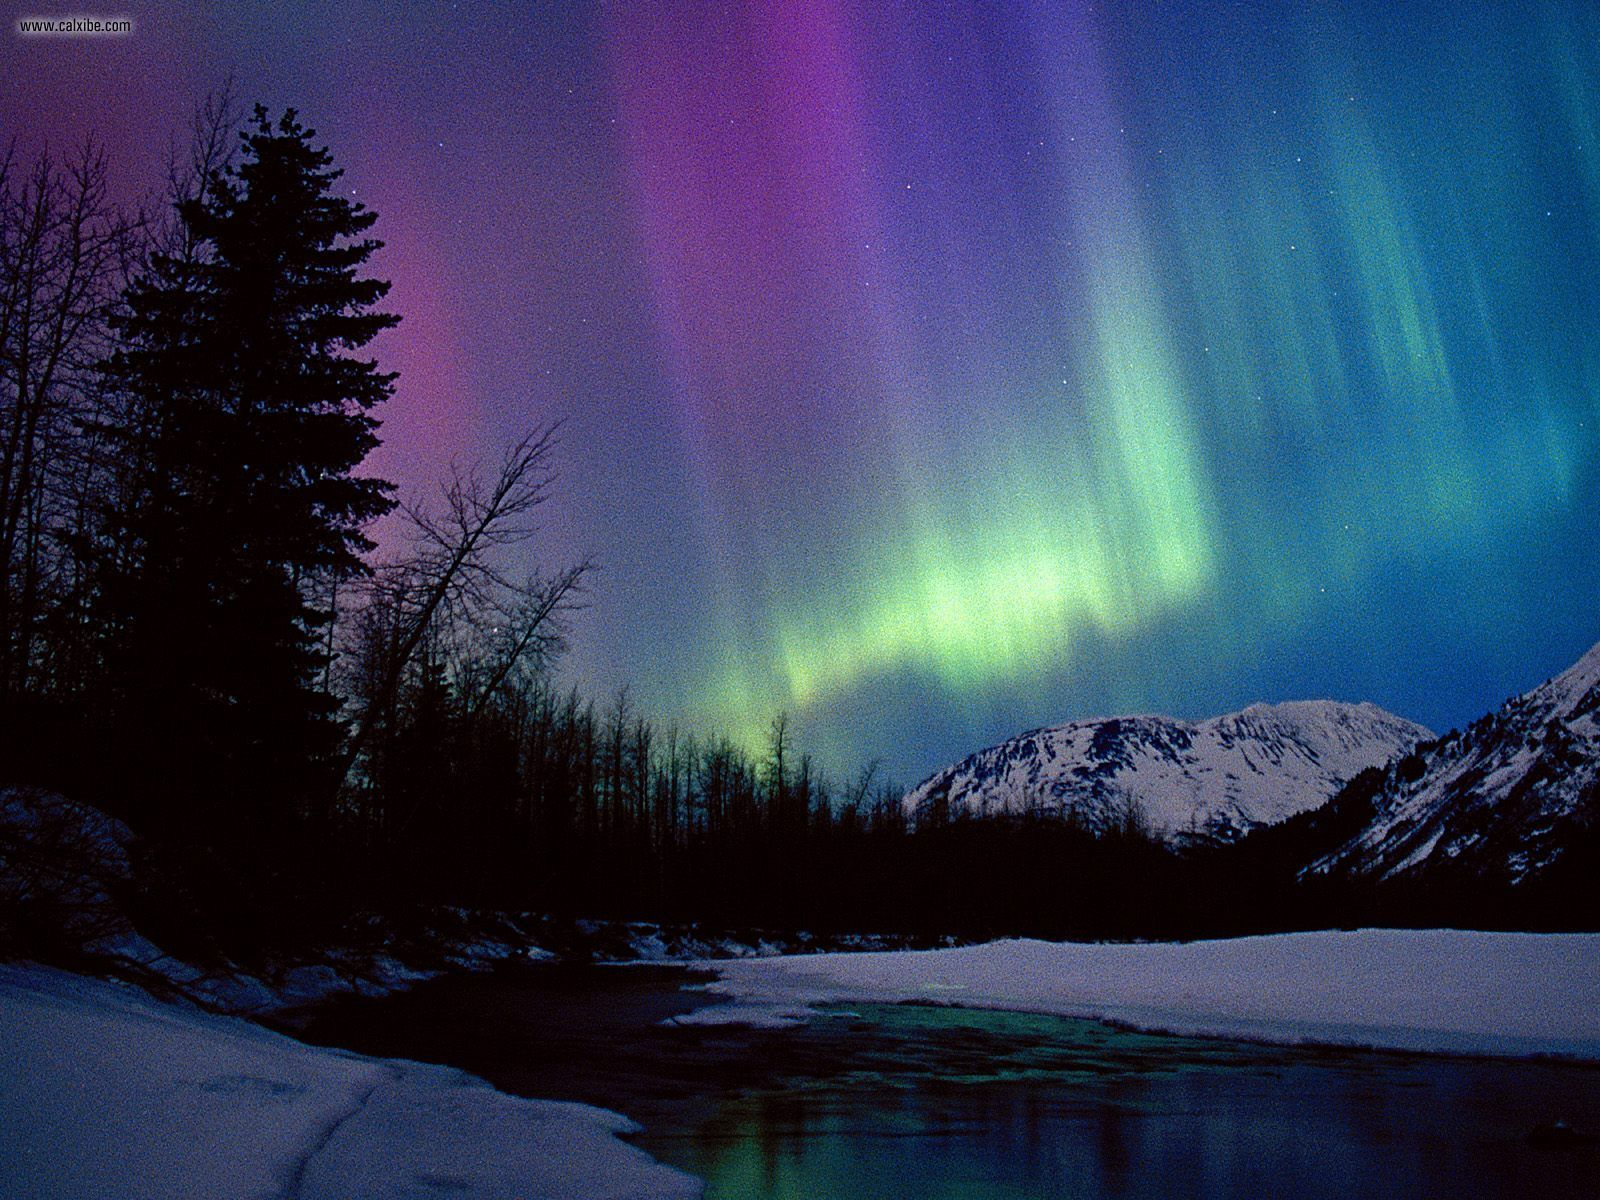 Amazing Northern Lights Hd Widescreen Wallpaper Wallpapers Source 1600x1200px